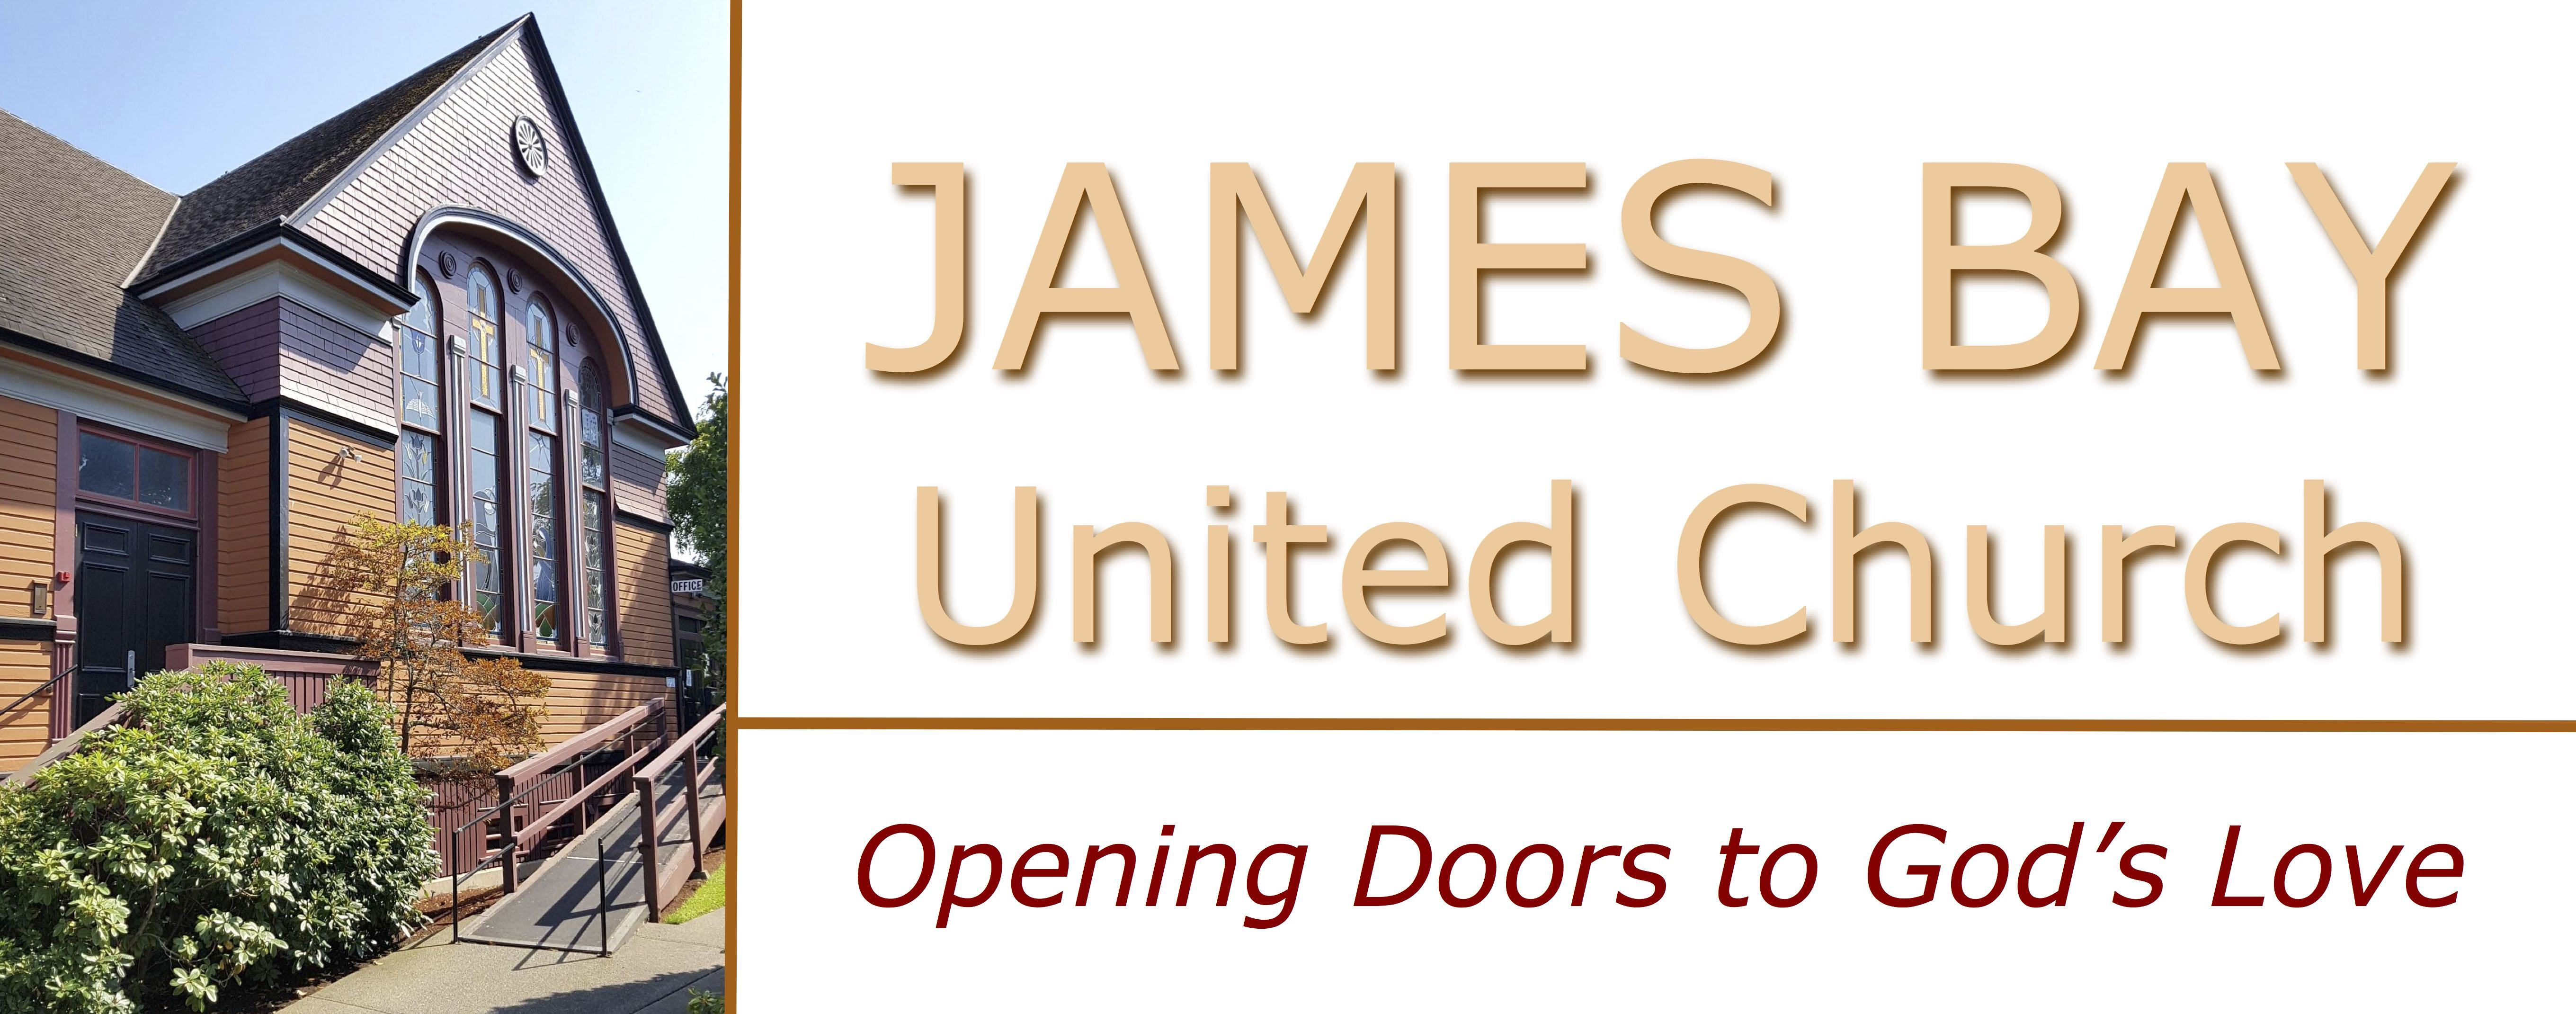 James Bay United Church